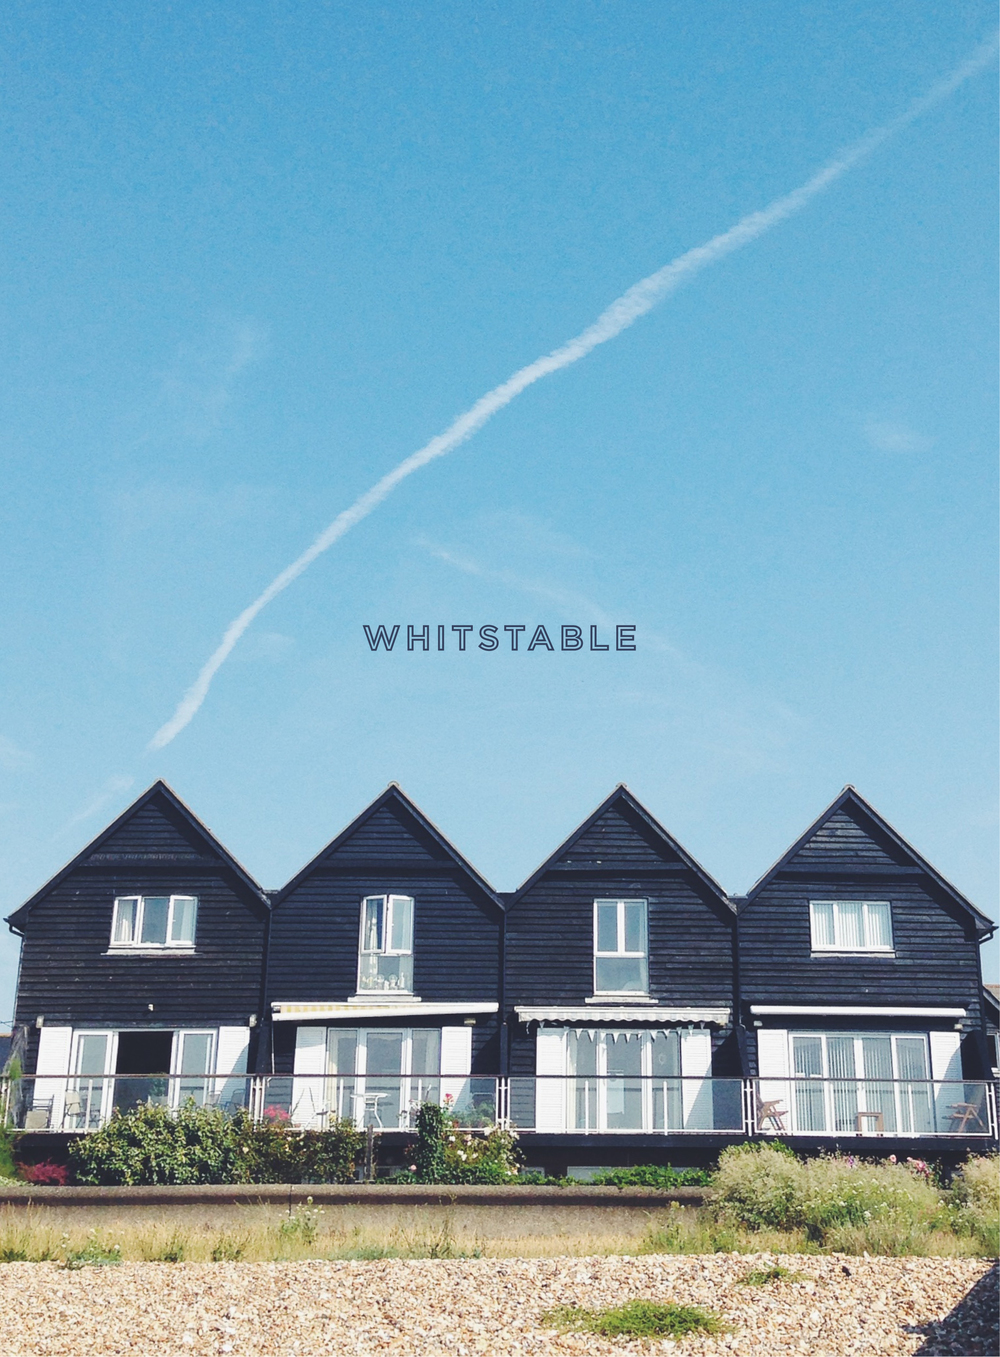 whitstable | sally mussellwhite